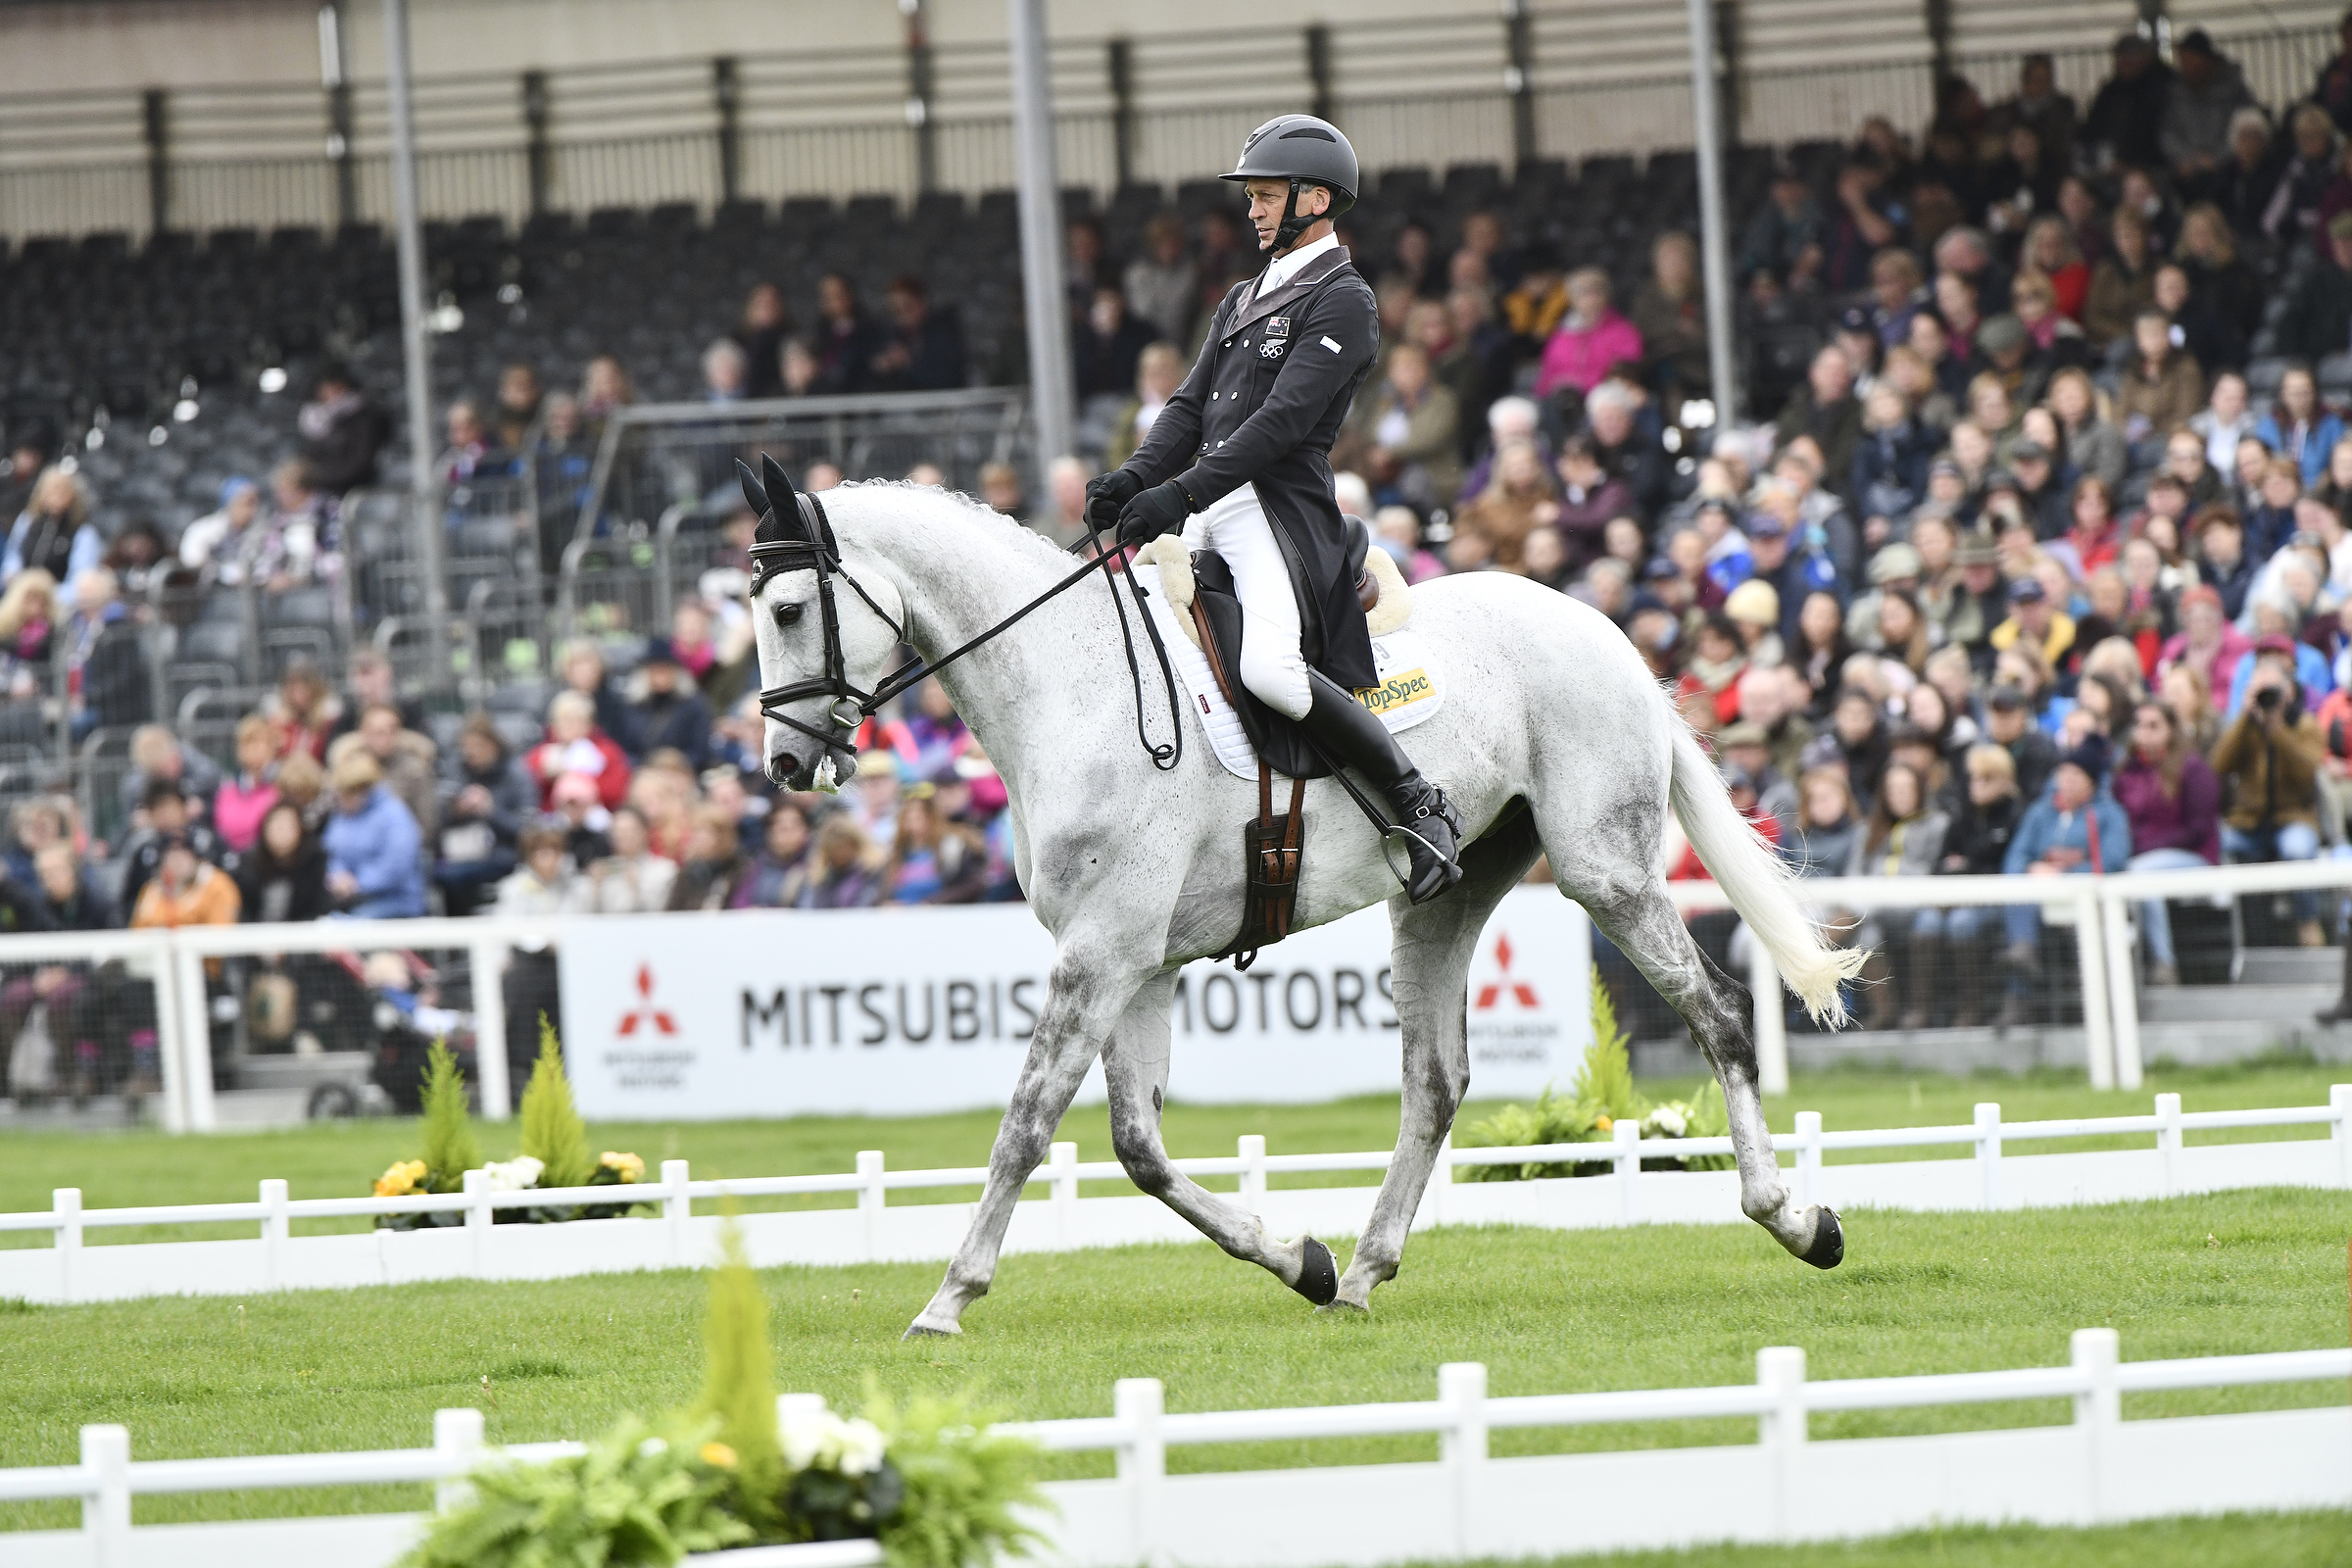 10, Andrew Nicholson - Swallow Springs is best placed of the New Zealand horses at this stage, lying 10th on 27.8pens (72.18%).